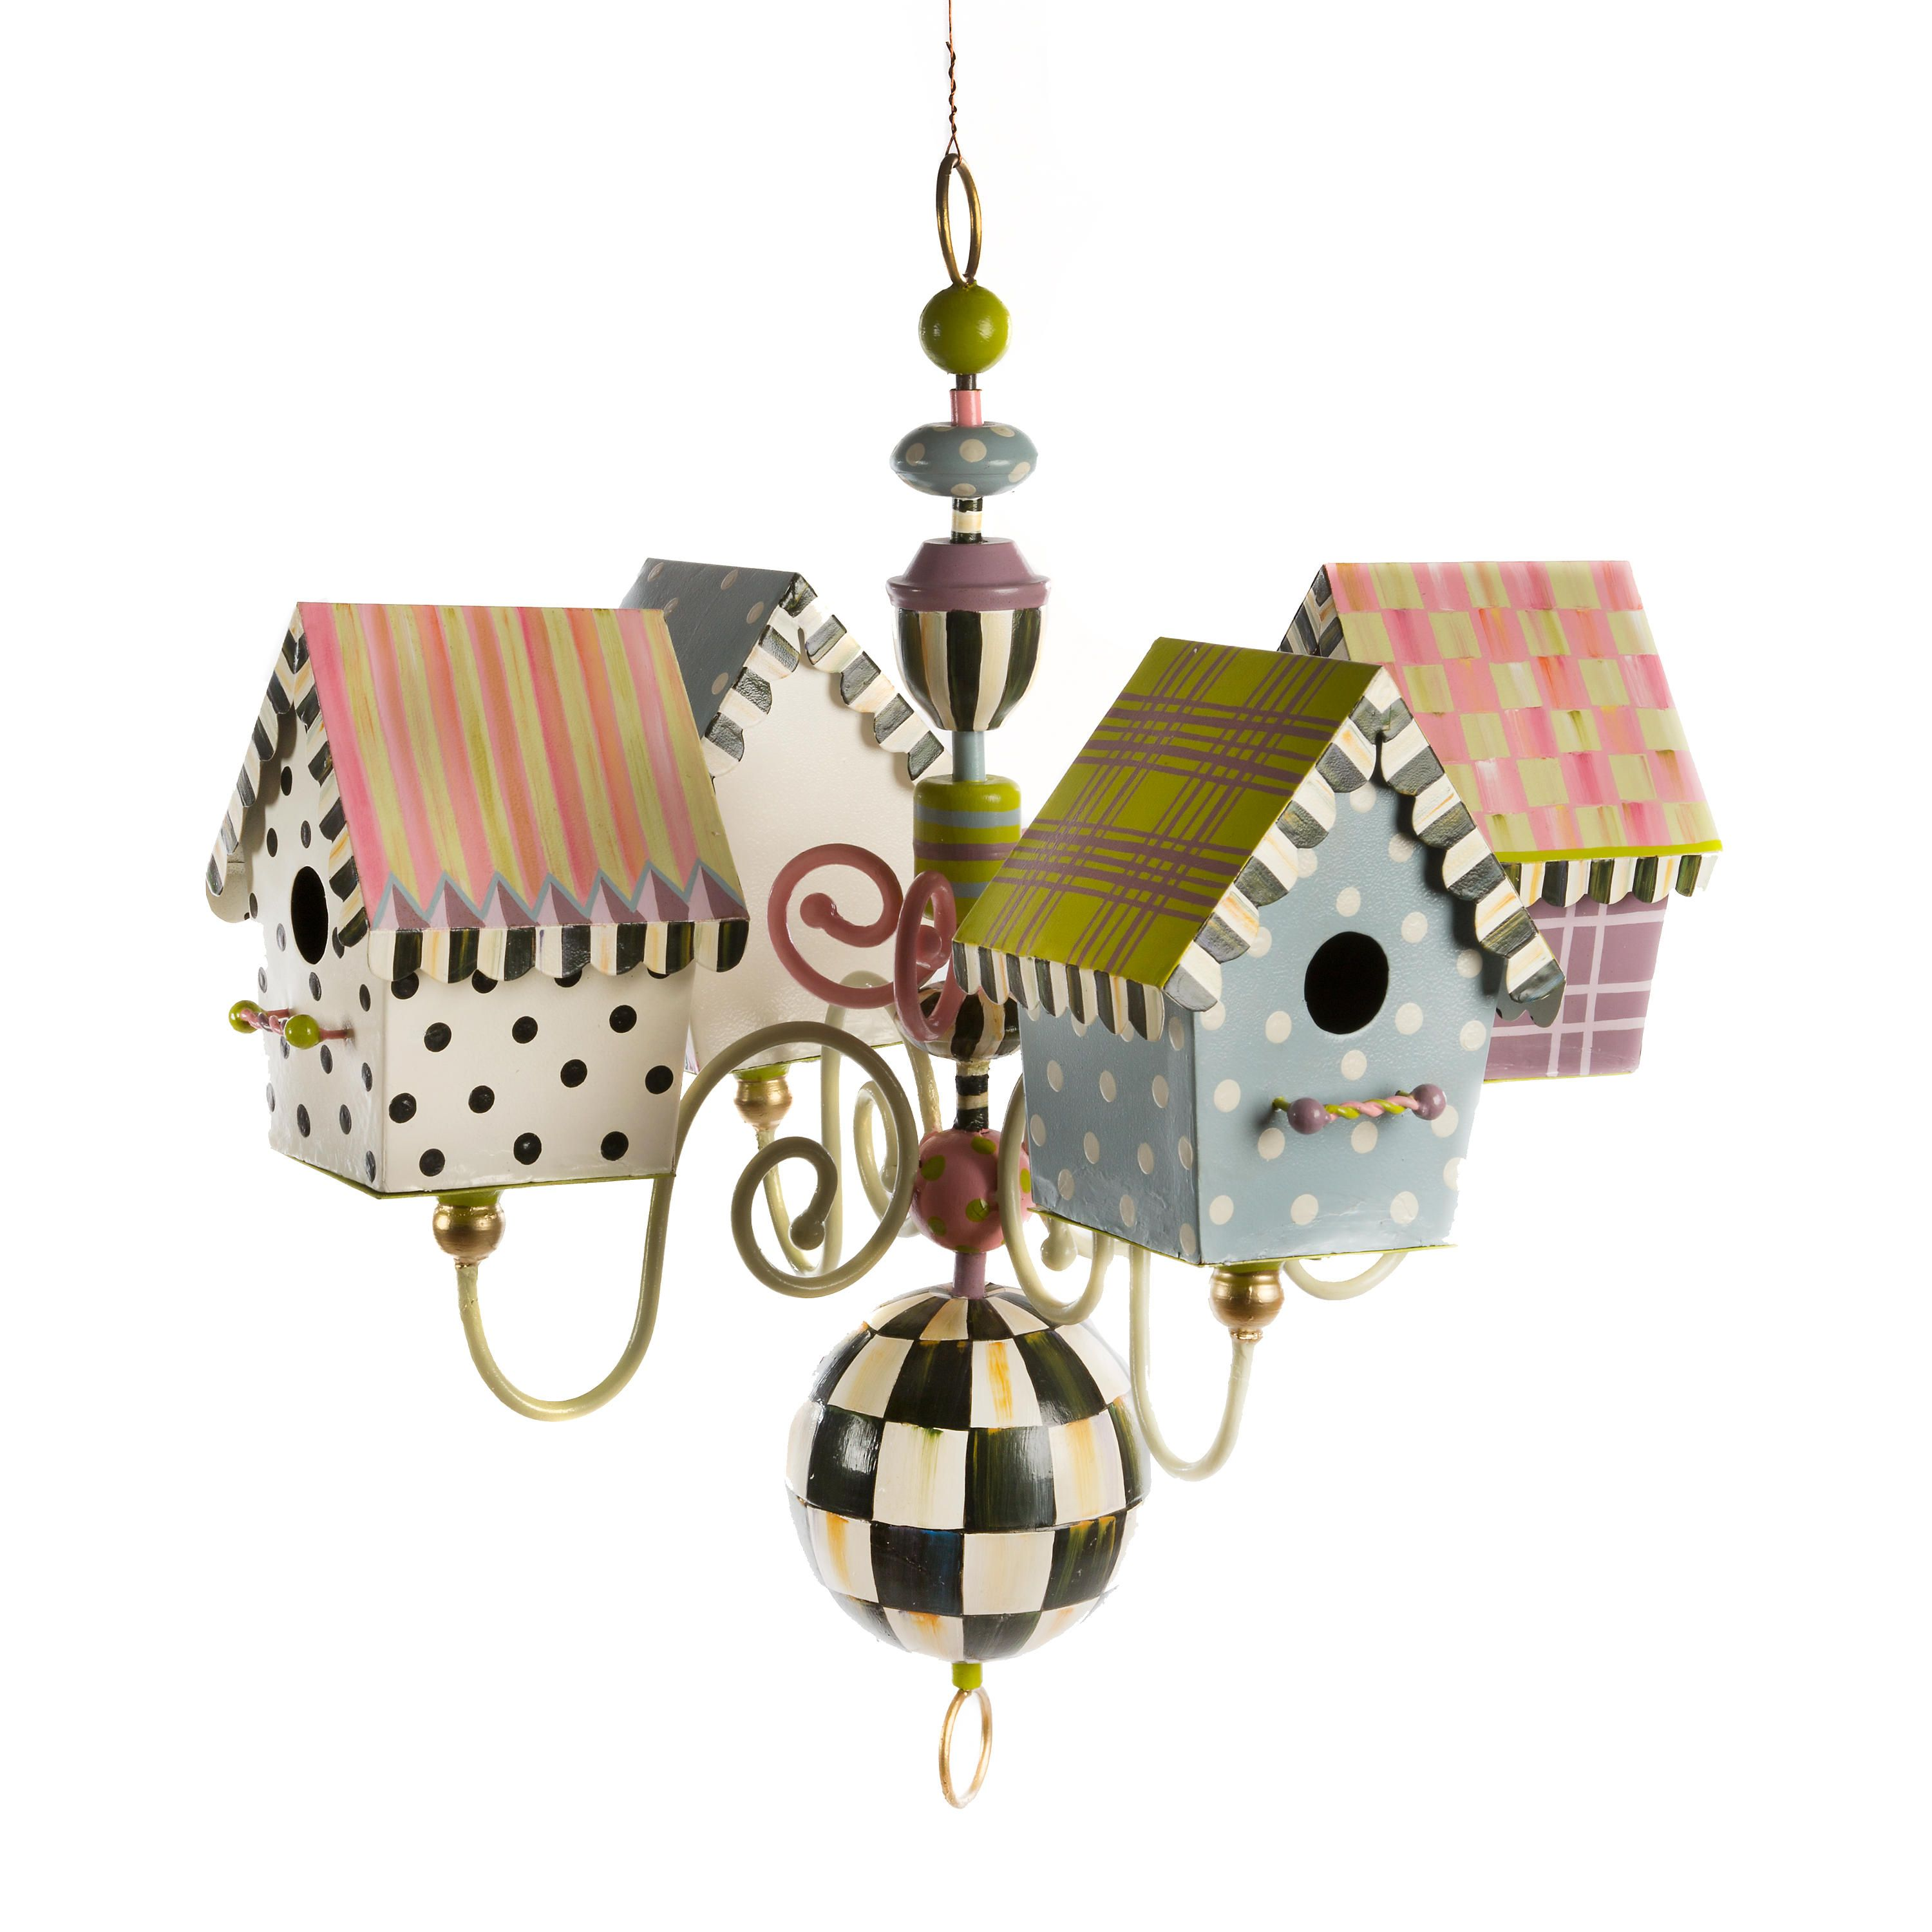 Mackenzie childs birdhouse chandelier mackenzie childs birdhouse chandelier mackenzie childs arubaitofo Image collections